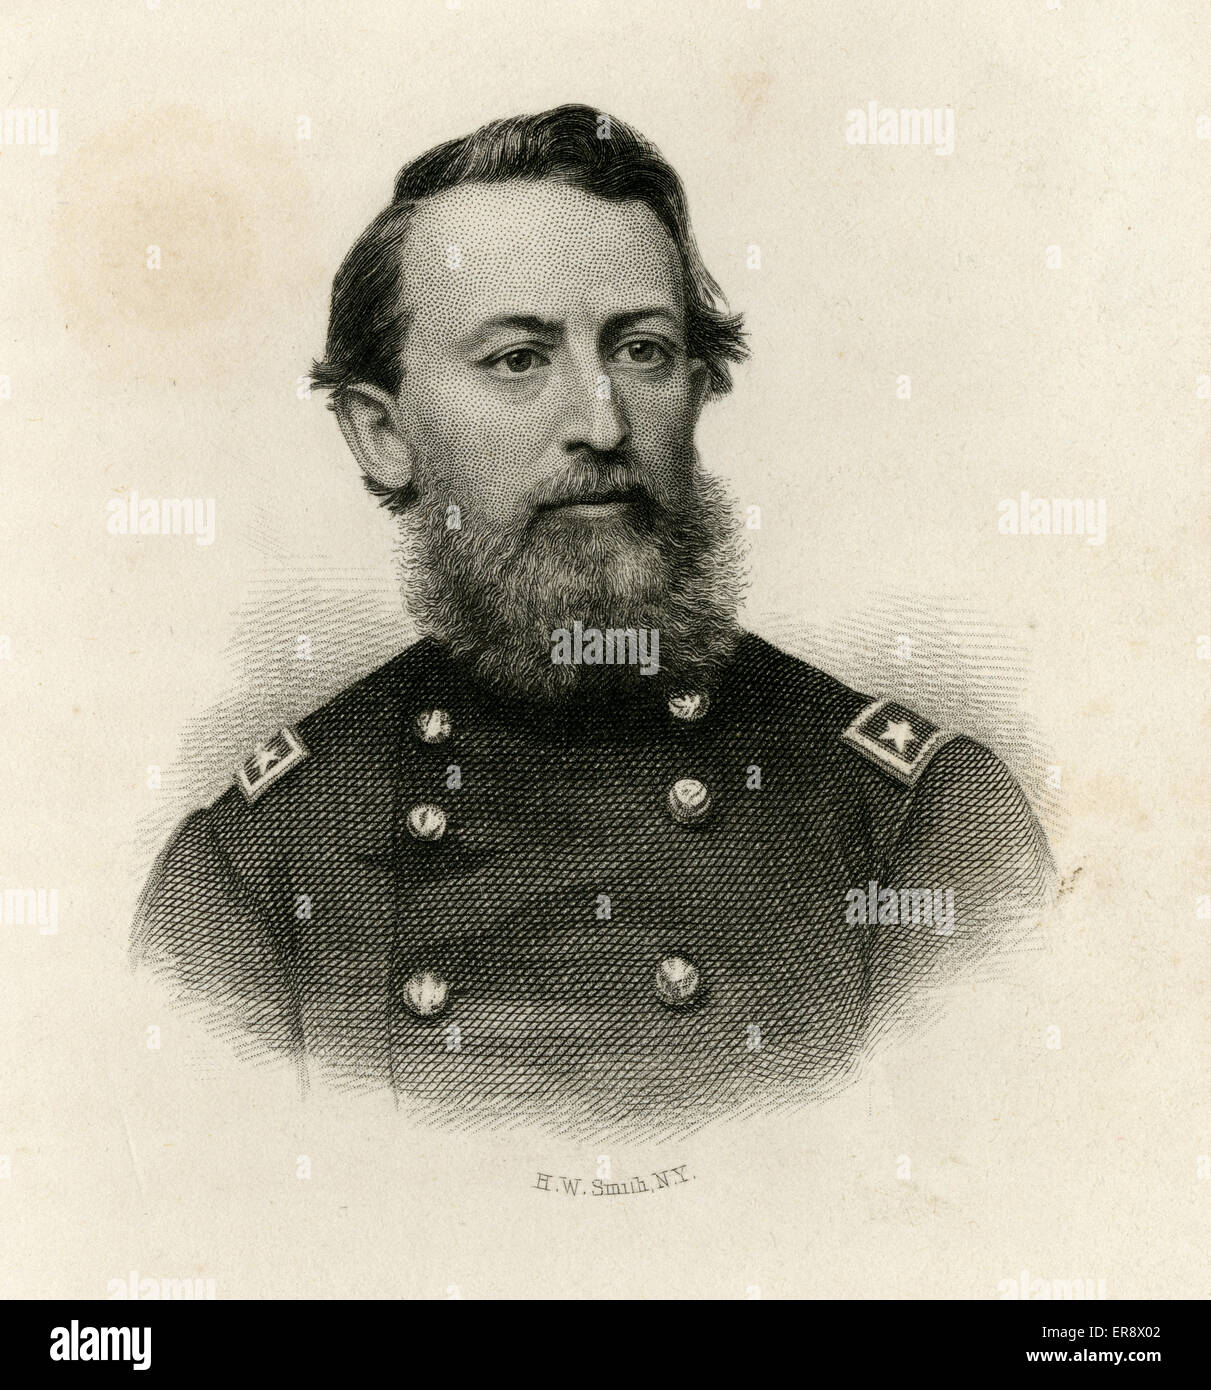 Antique 1866 engraving, Brigadier General Jonathan Prince Cilley, of the 1st Maine Volunteer Cavalry Regiment. - Stock Image